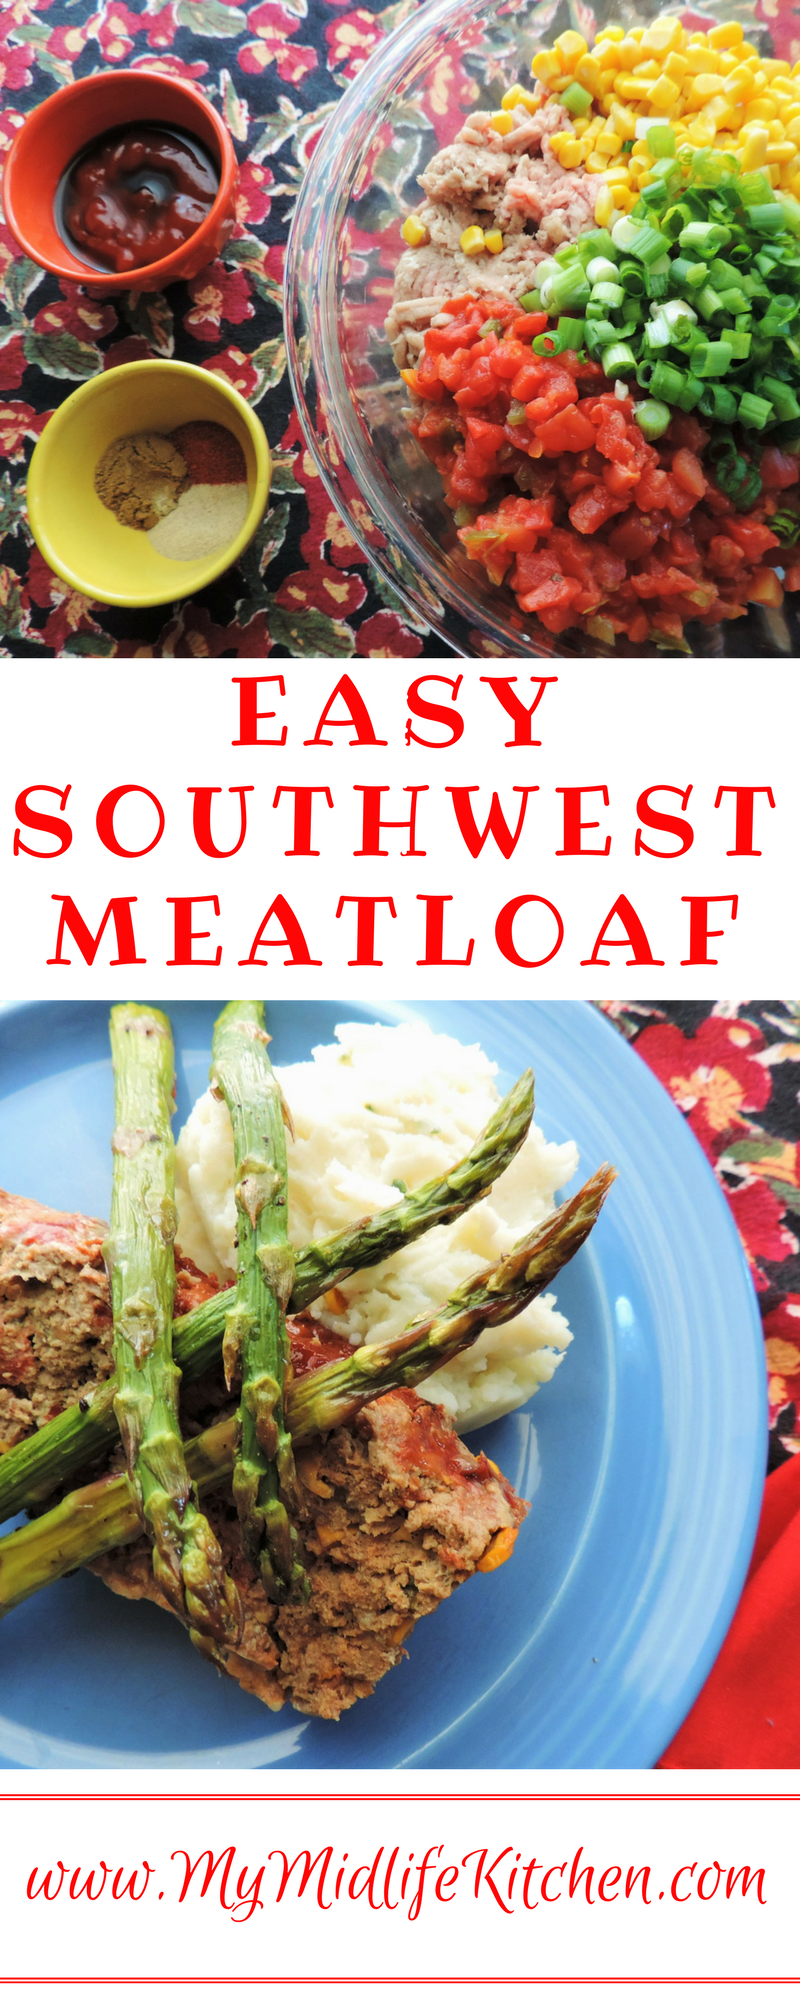 Easy-Southwest-Meatloaf